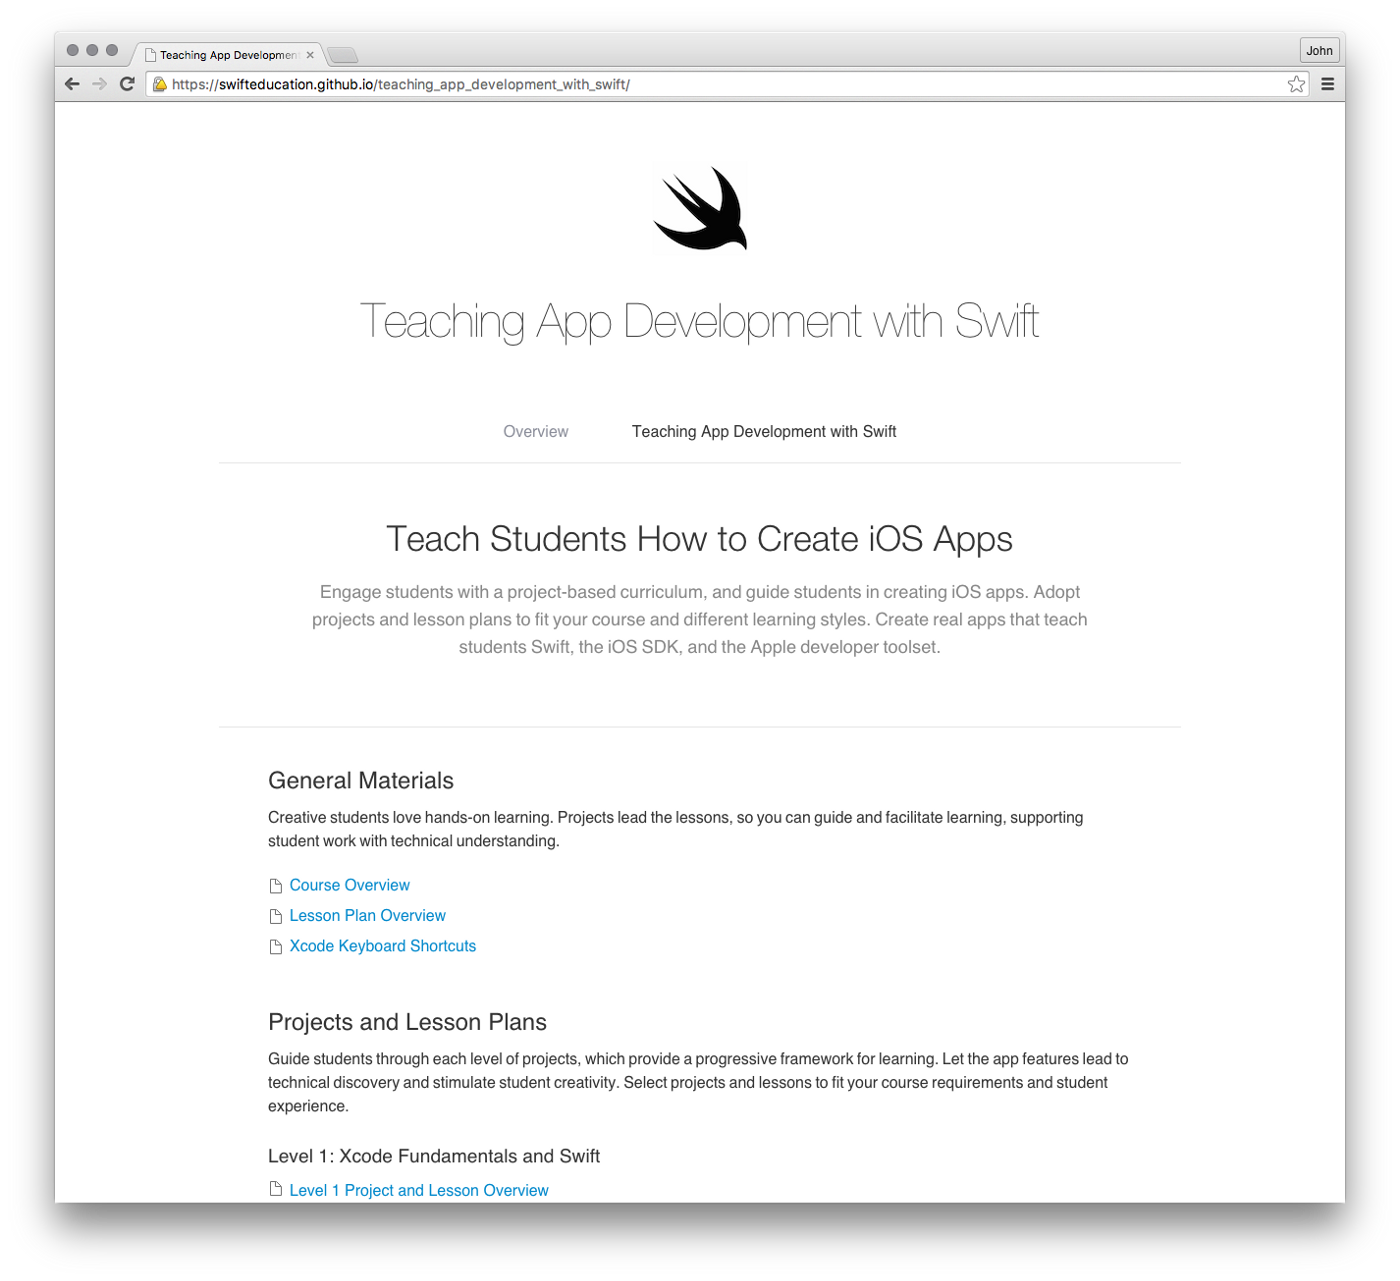 Apple has published a great free learn to code course for Swift — on